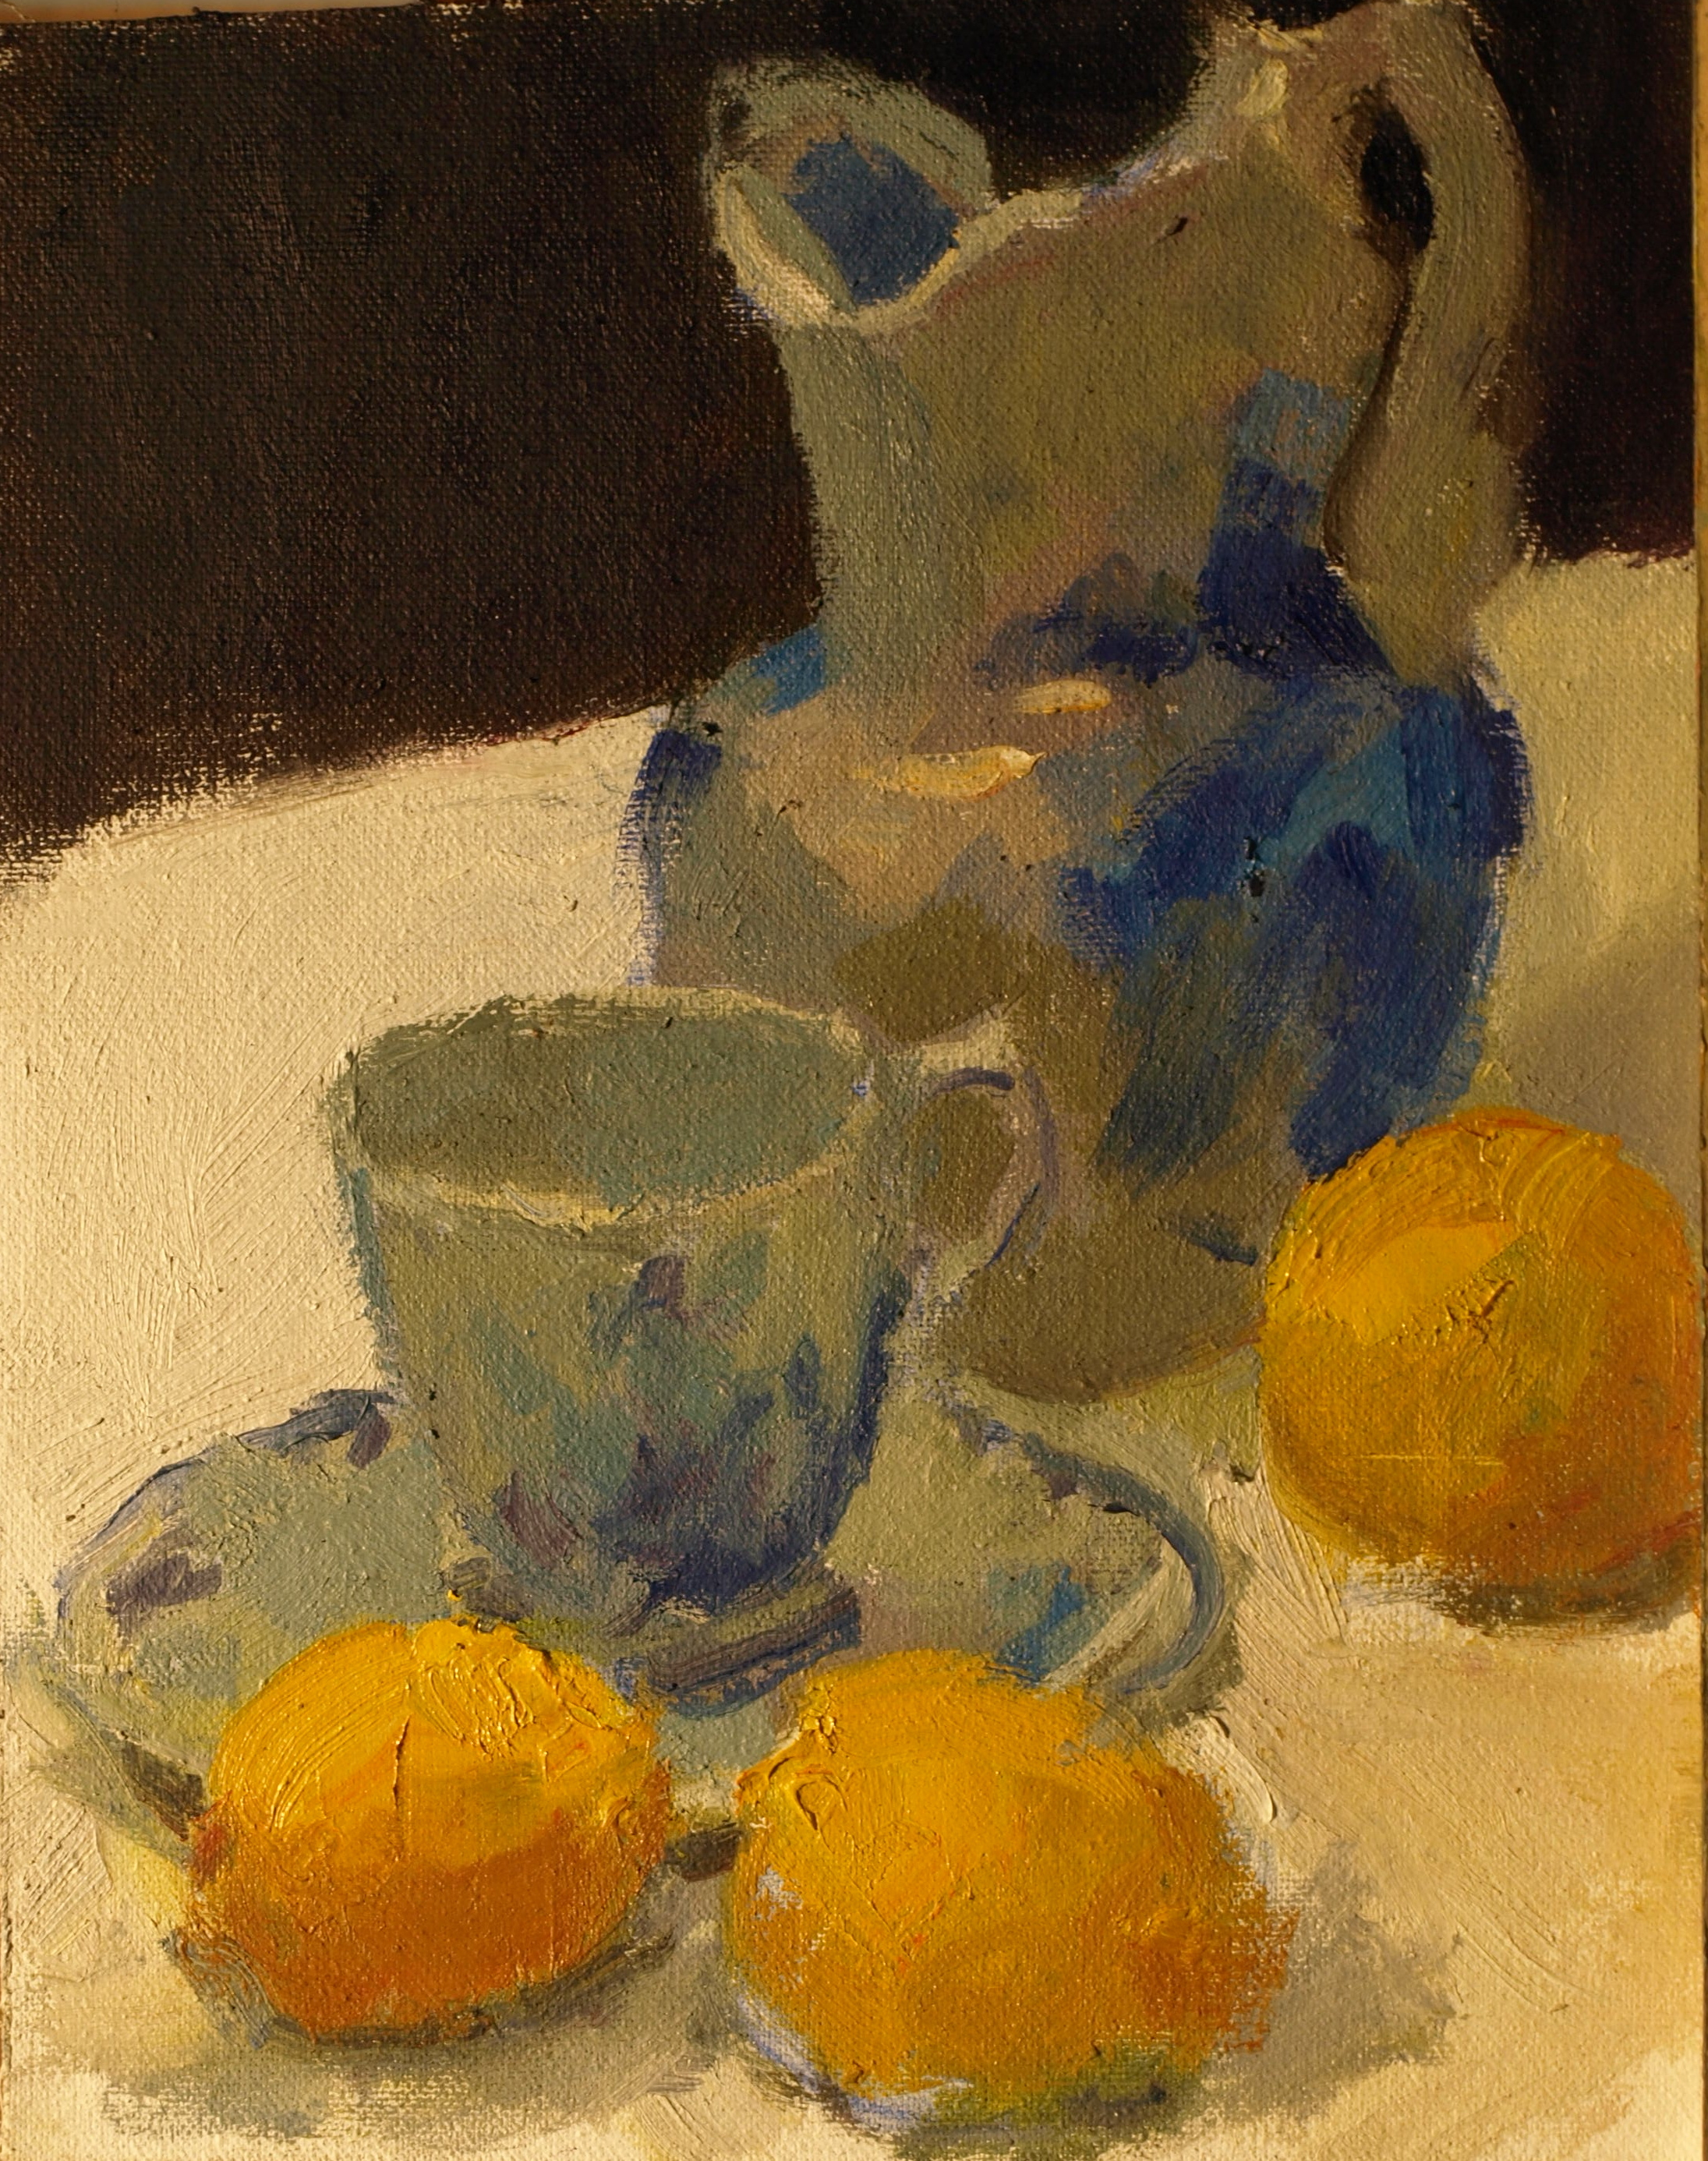 Blue White and Yellow, Oil on Canvas on Panel, 10 x 8 Inches, by Susan Grisell, $200